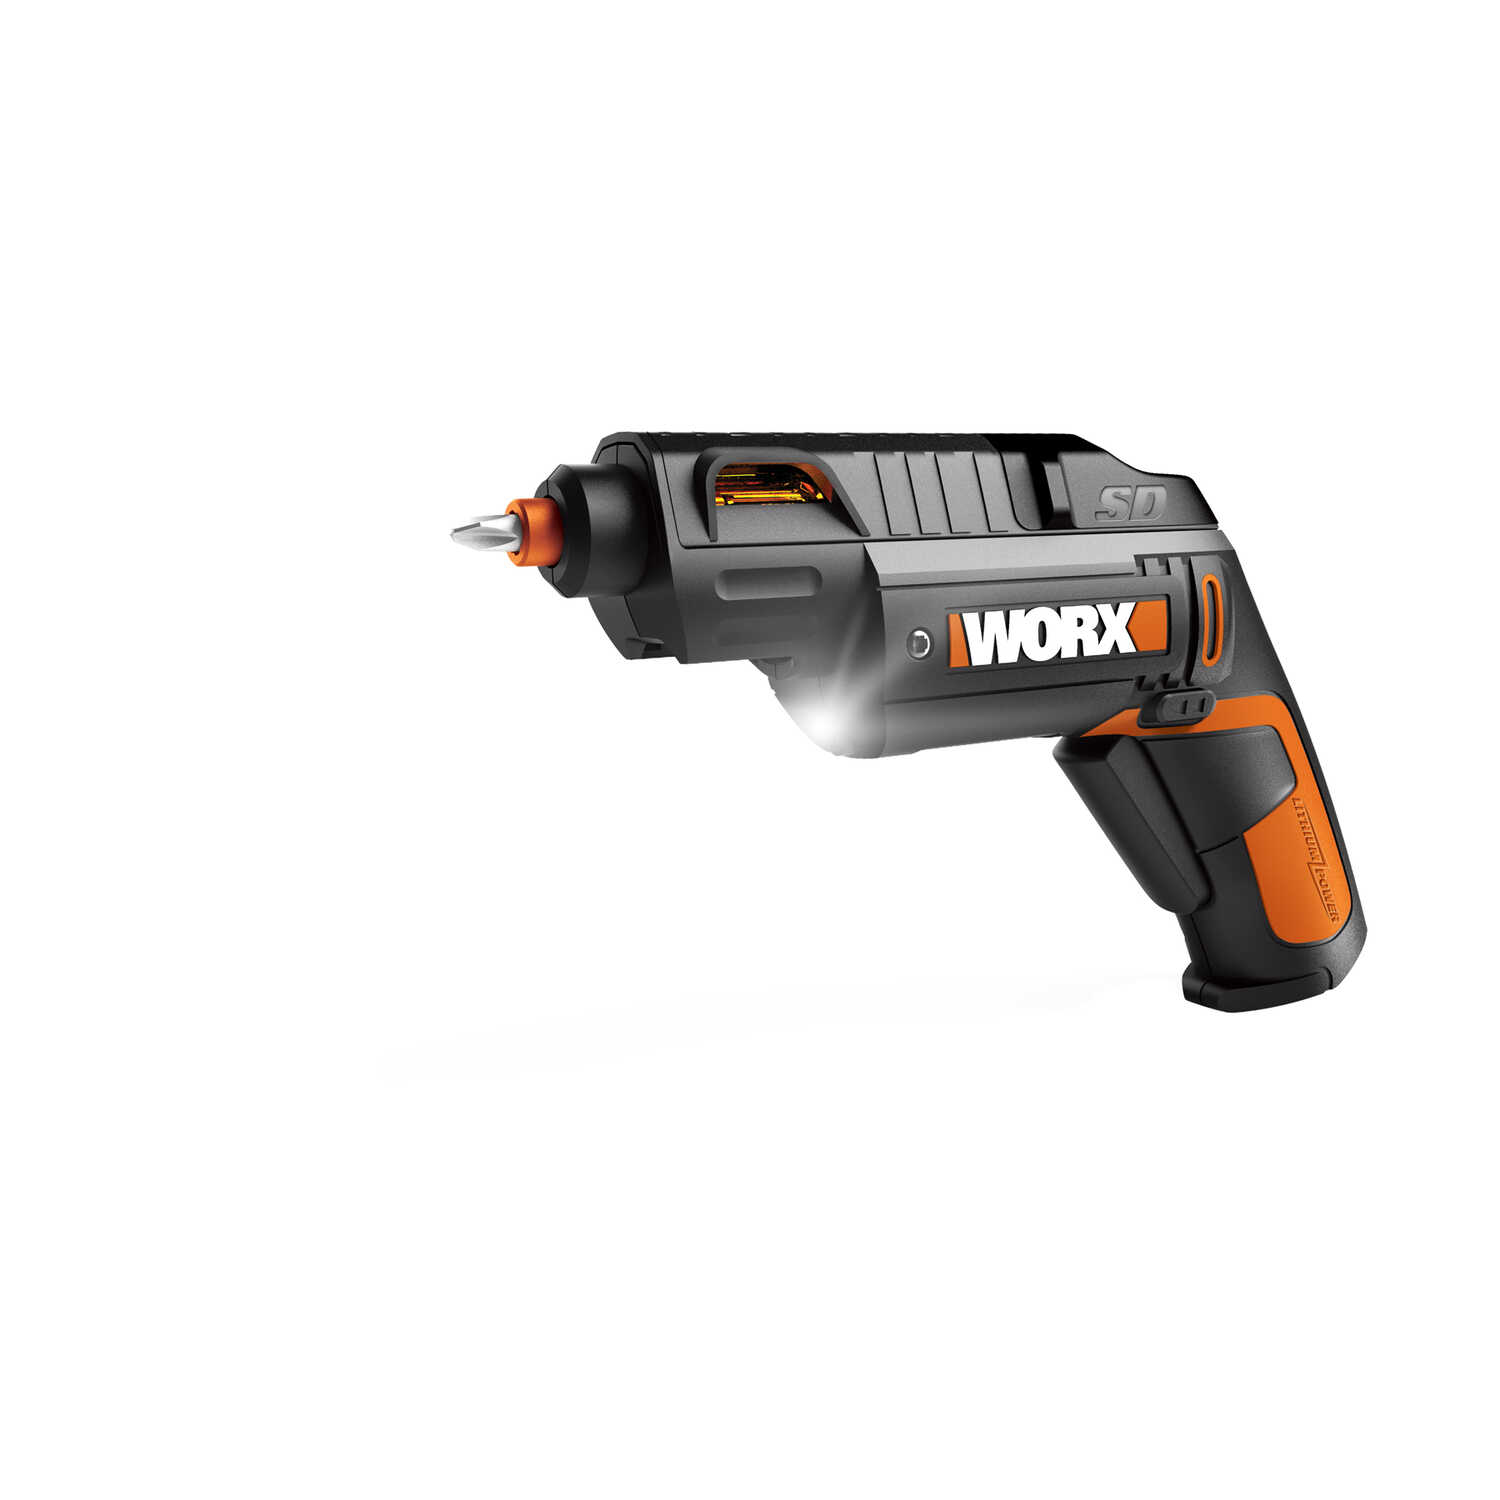 Rockwell  Worx  1/4 in. Cordless  Keyless  Semi-Automatic Driver  4 volt 230 rpm 16 pc.